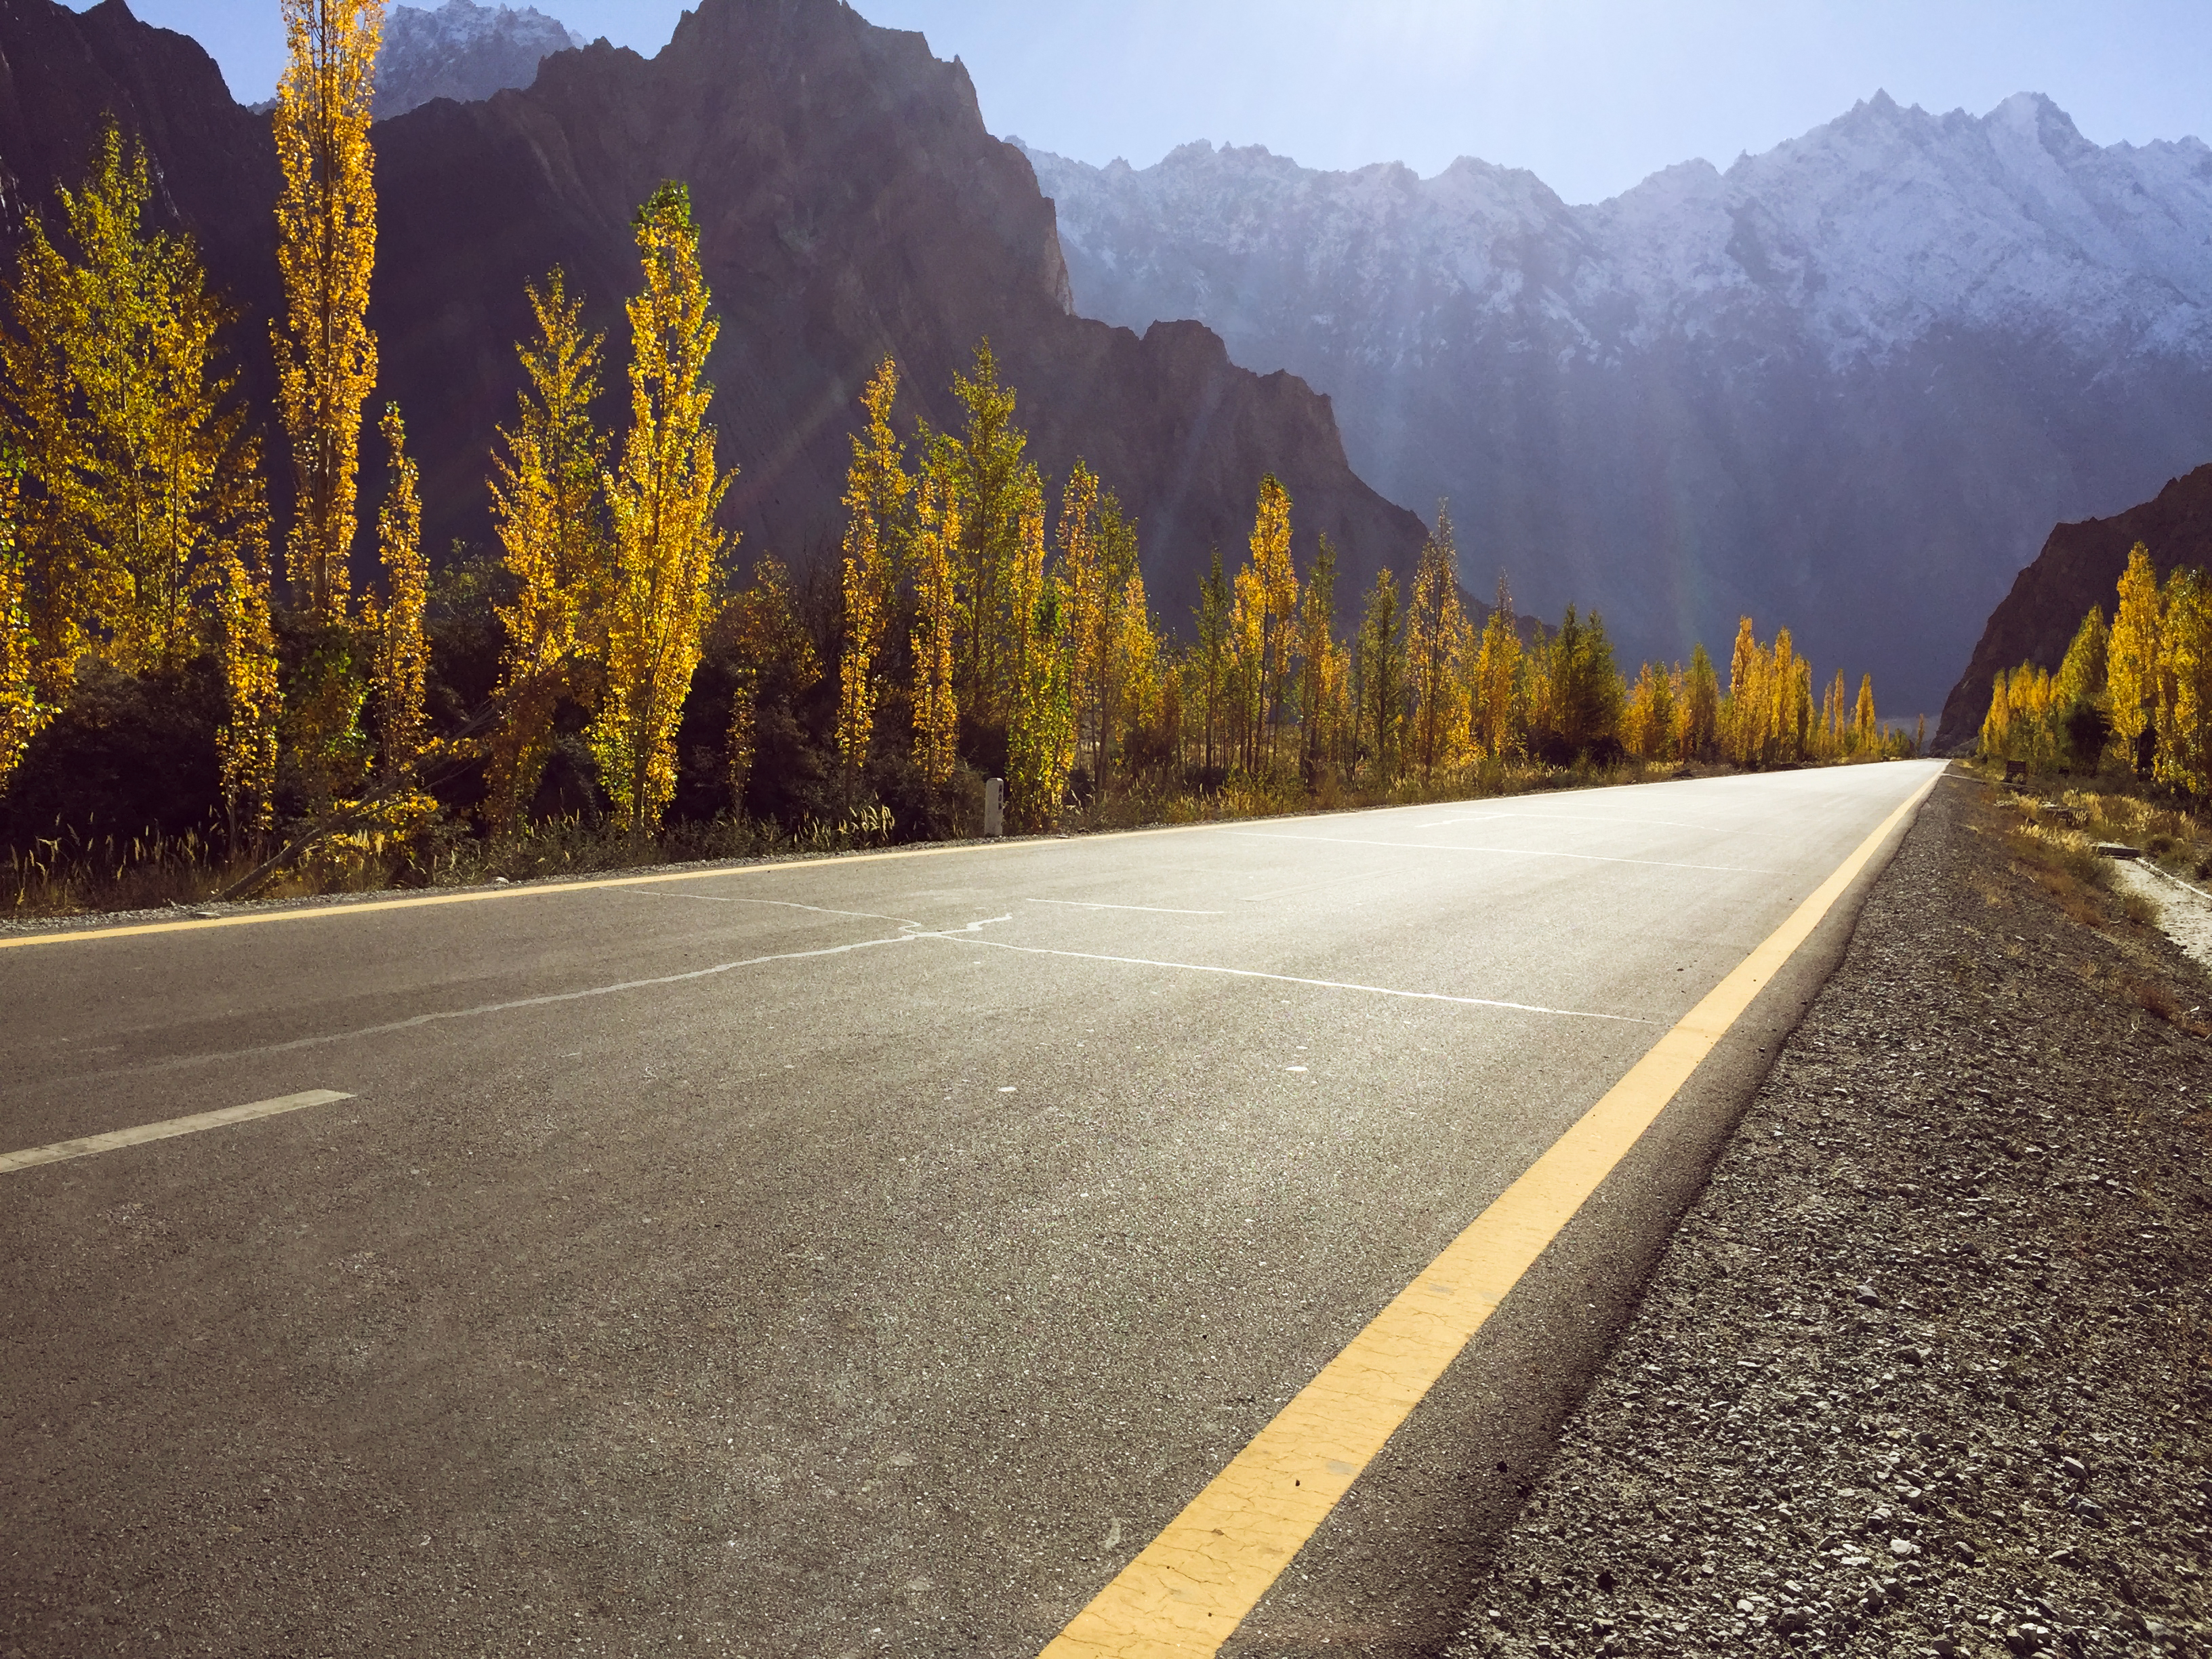 Roadside of Karakoram highway in autumn, Pakistan